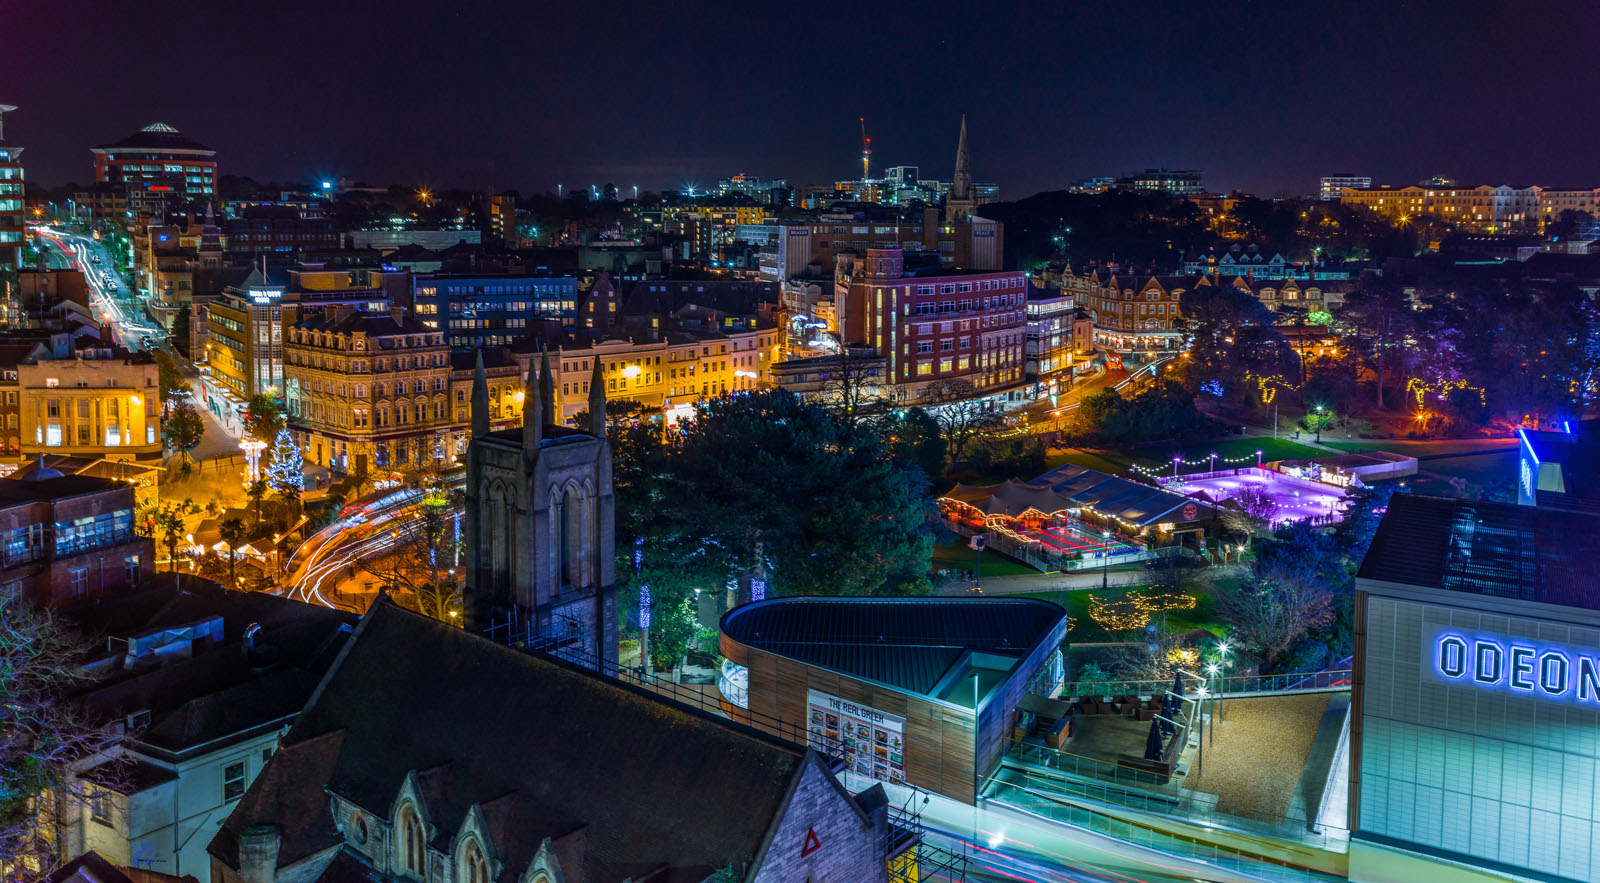 An image of Bournemouth Town Centre at night.